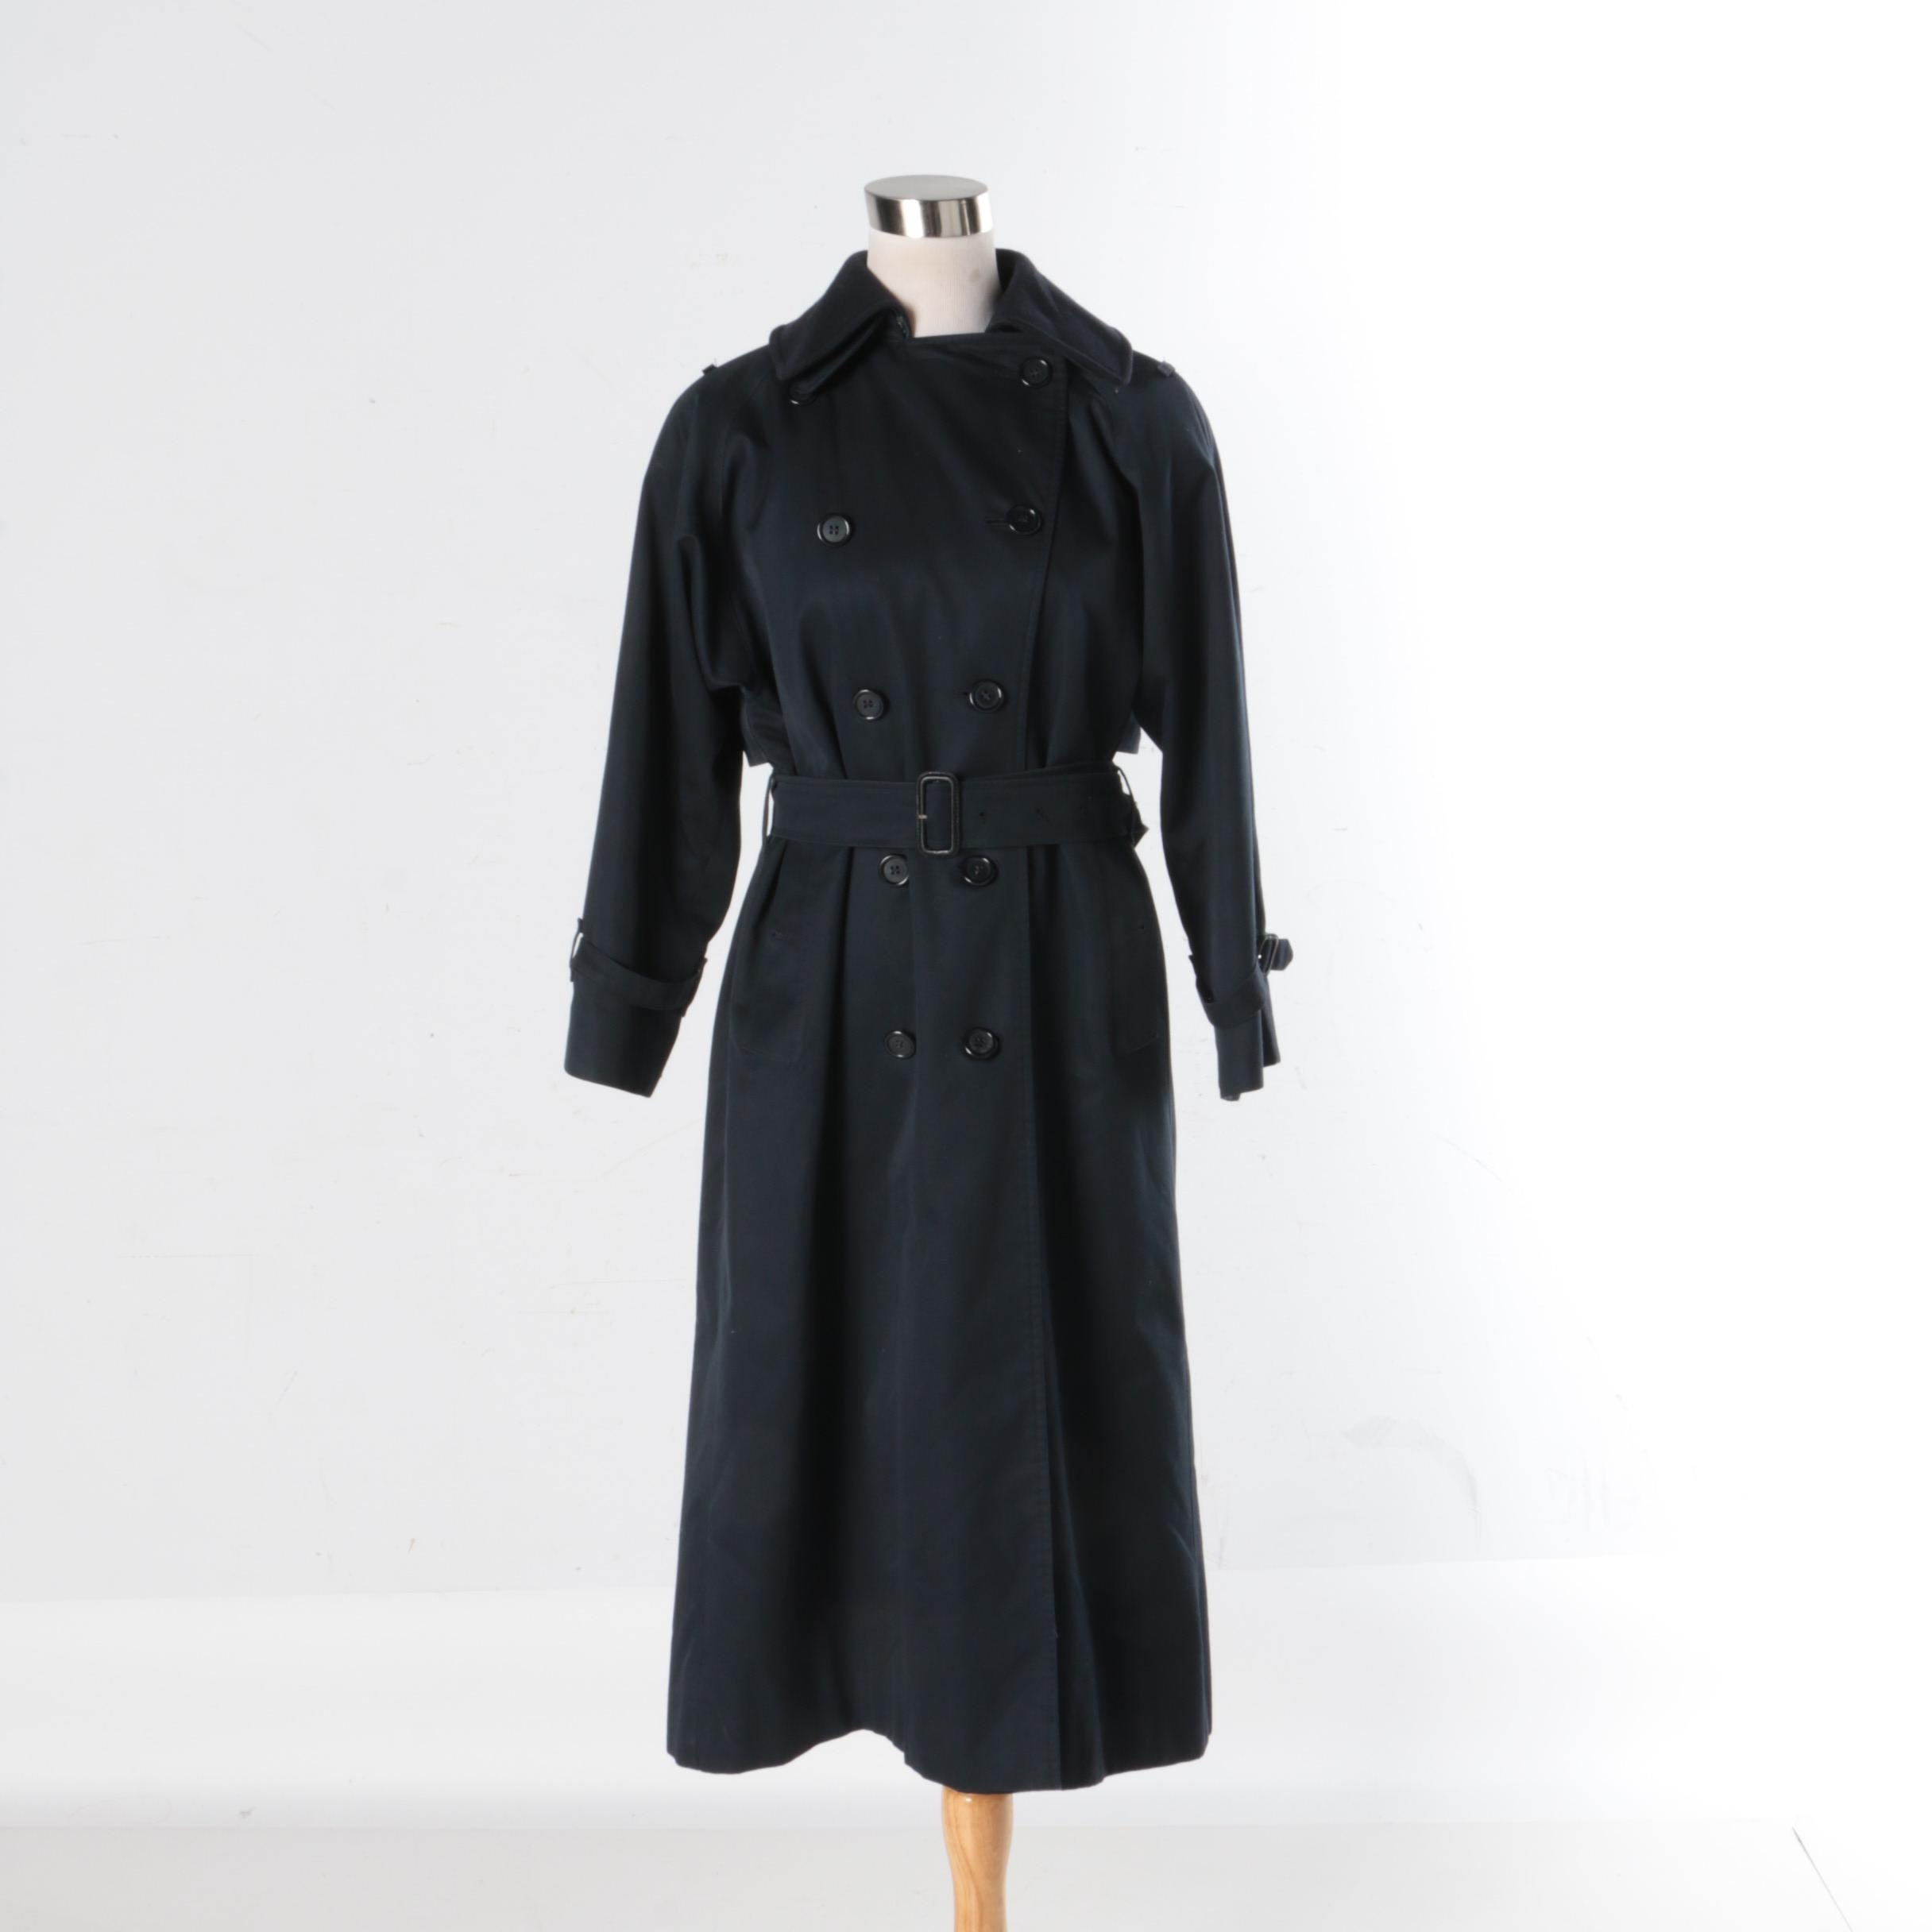 Women's Burberry Trench Coat with Removable Wool Lining